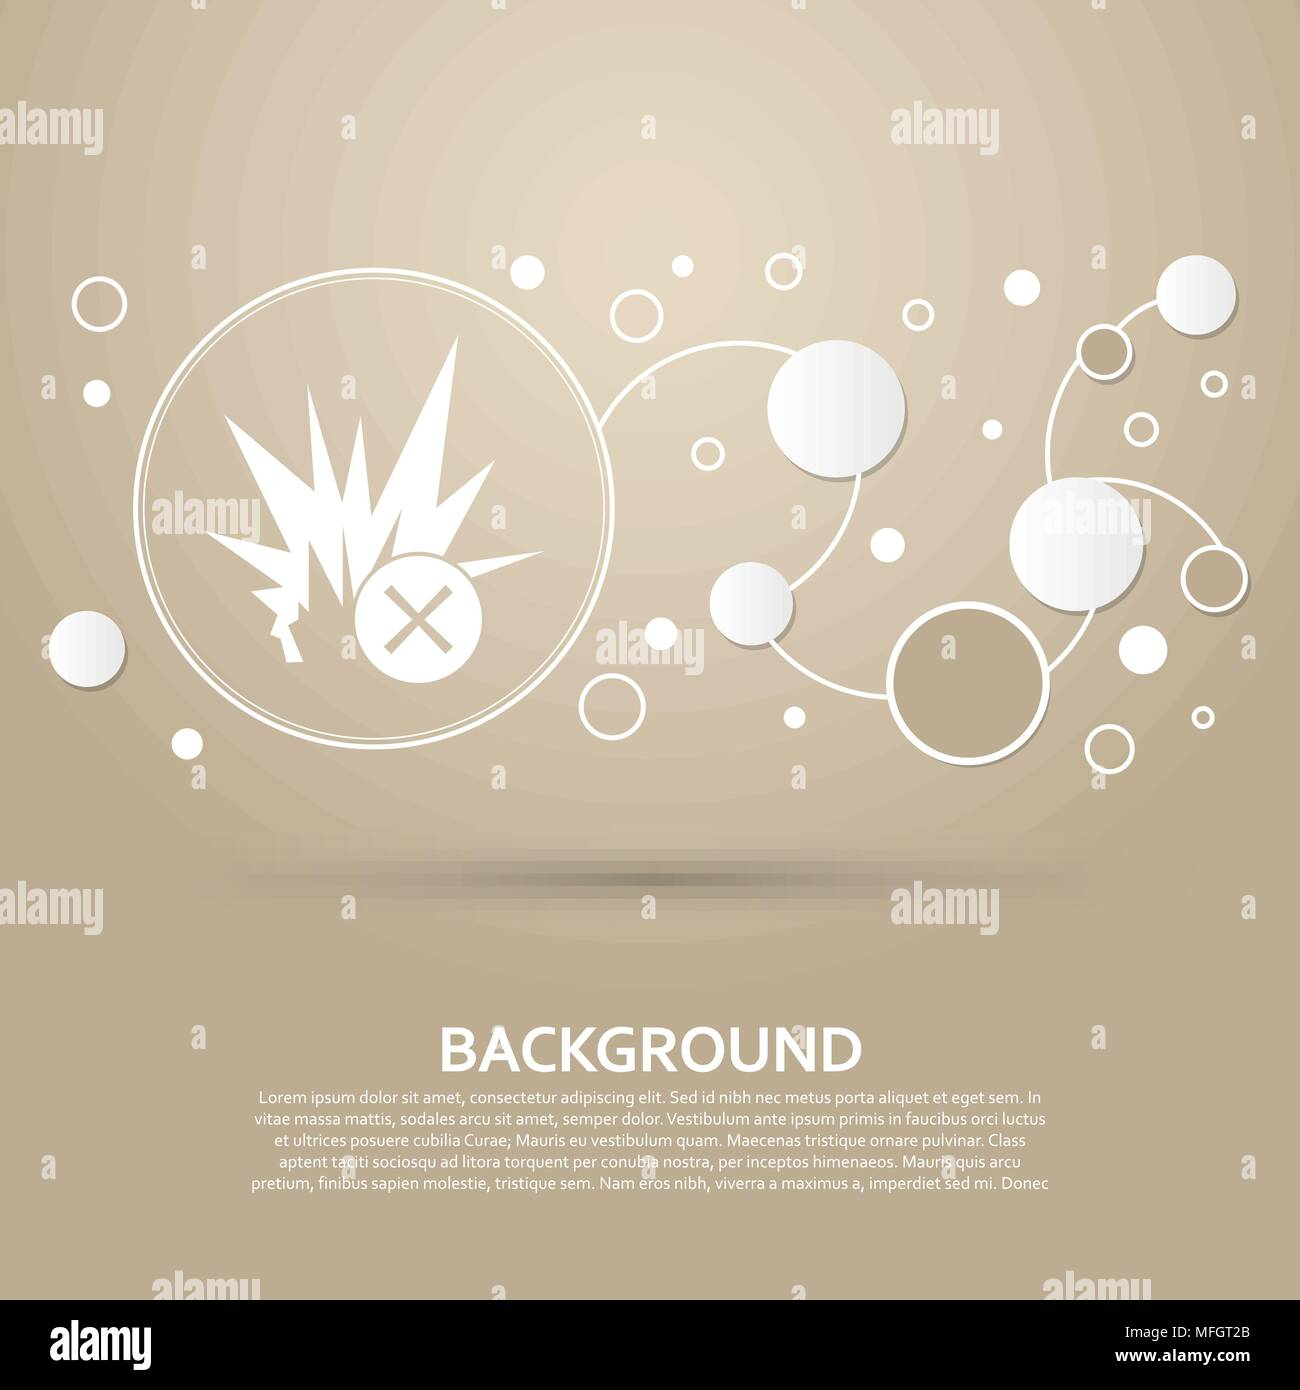 explosion icon on a brown background with elegant style and modern design infographic. Vector illustration Stock Vector